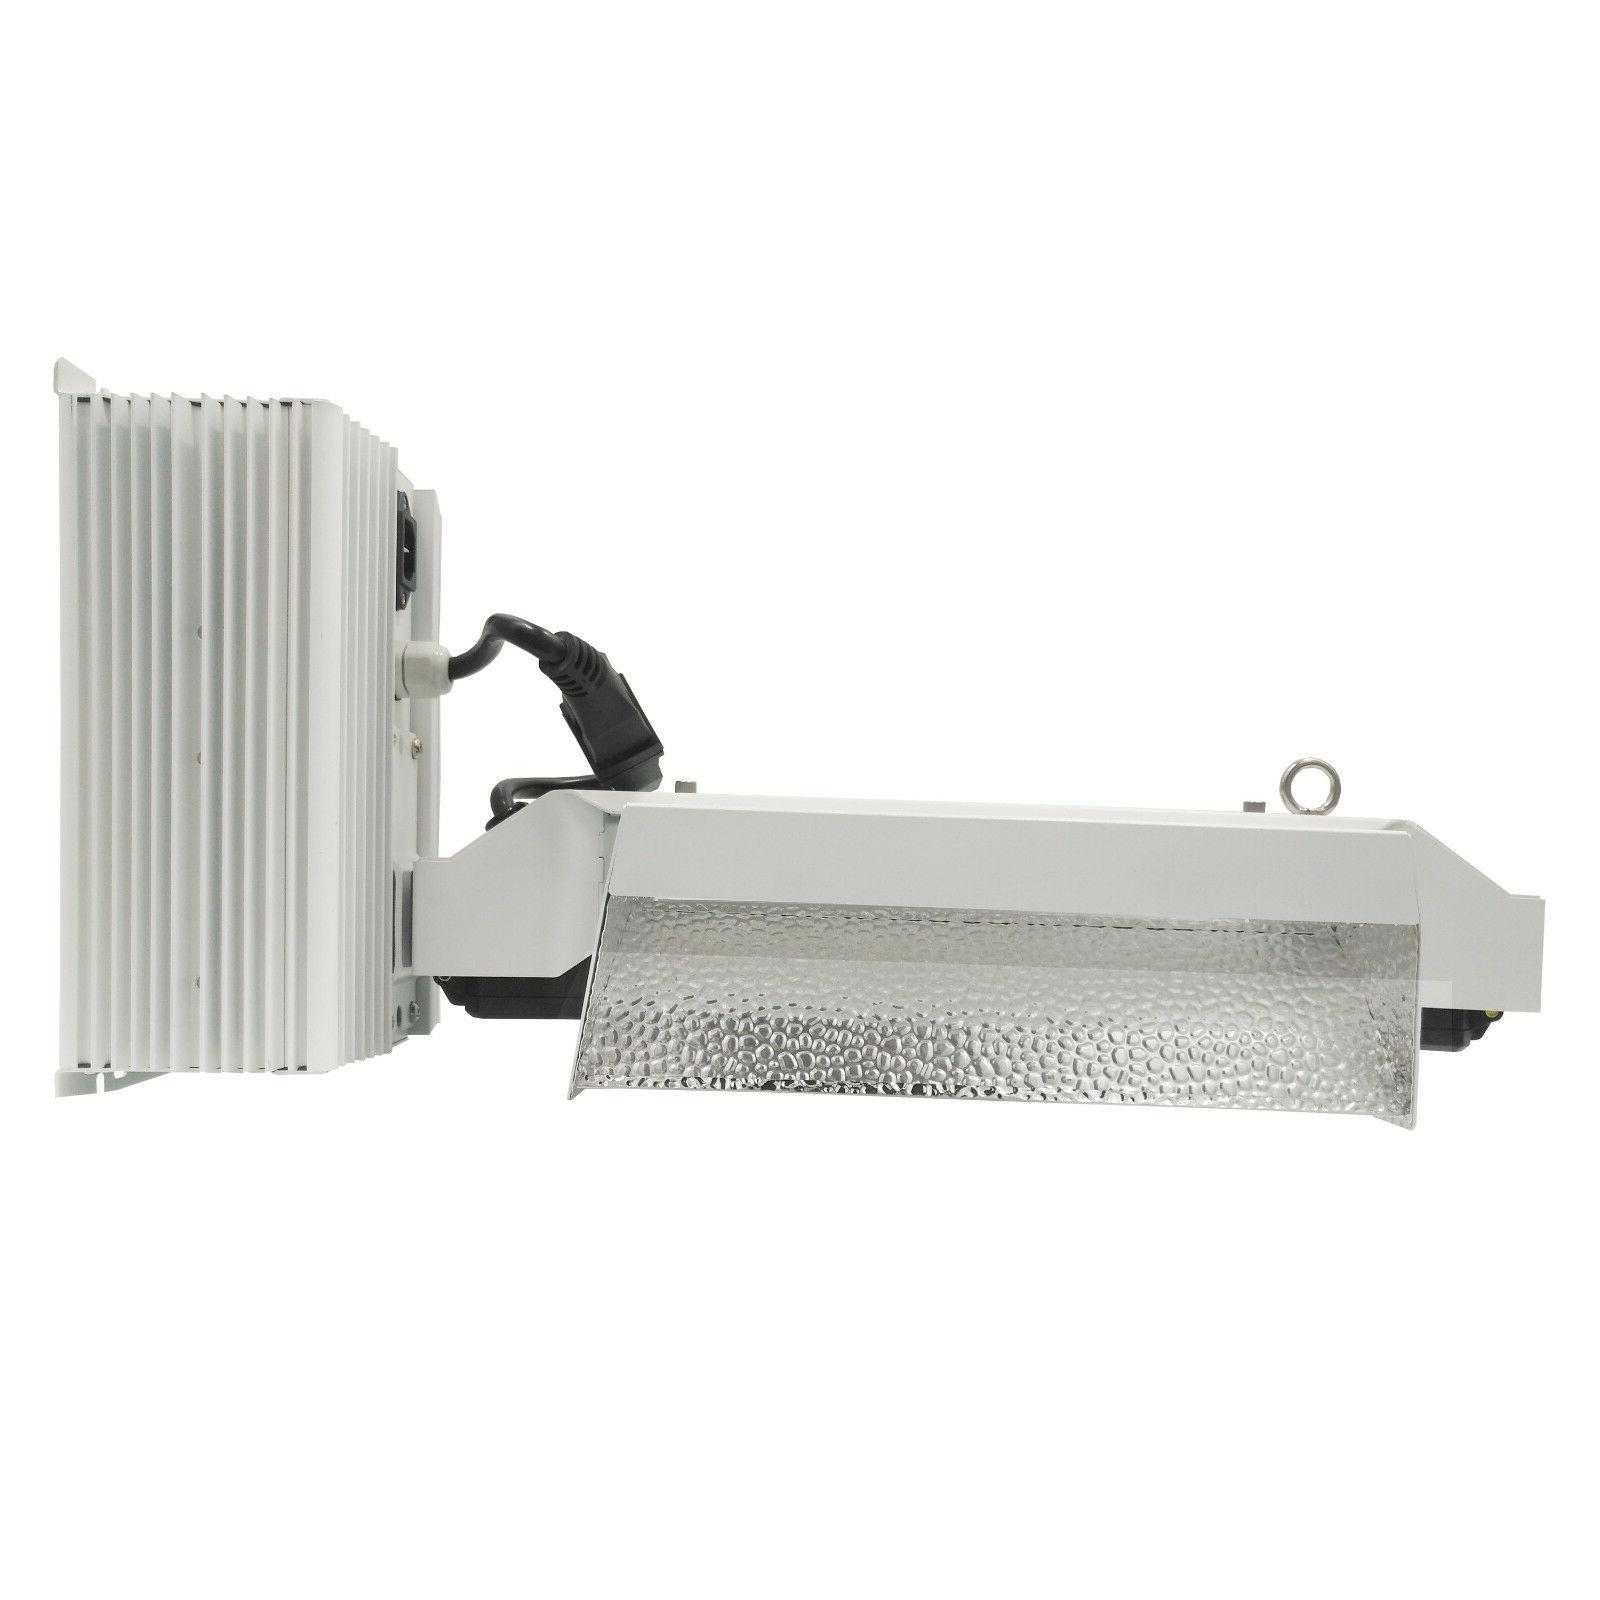 Hydro 1000W Ended Light Fixture OPEN